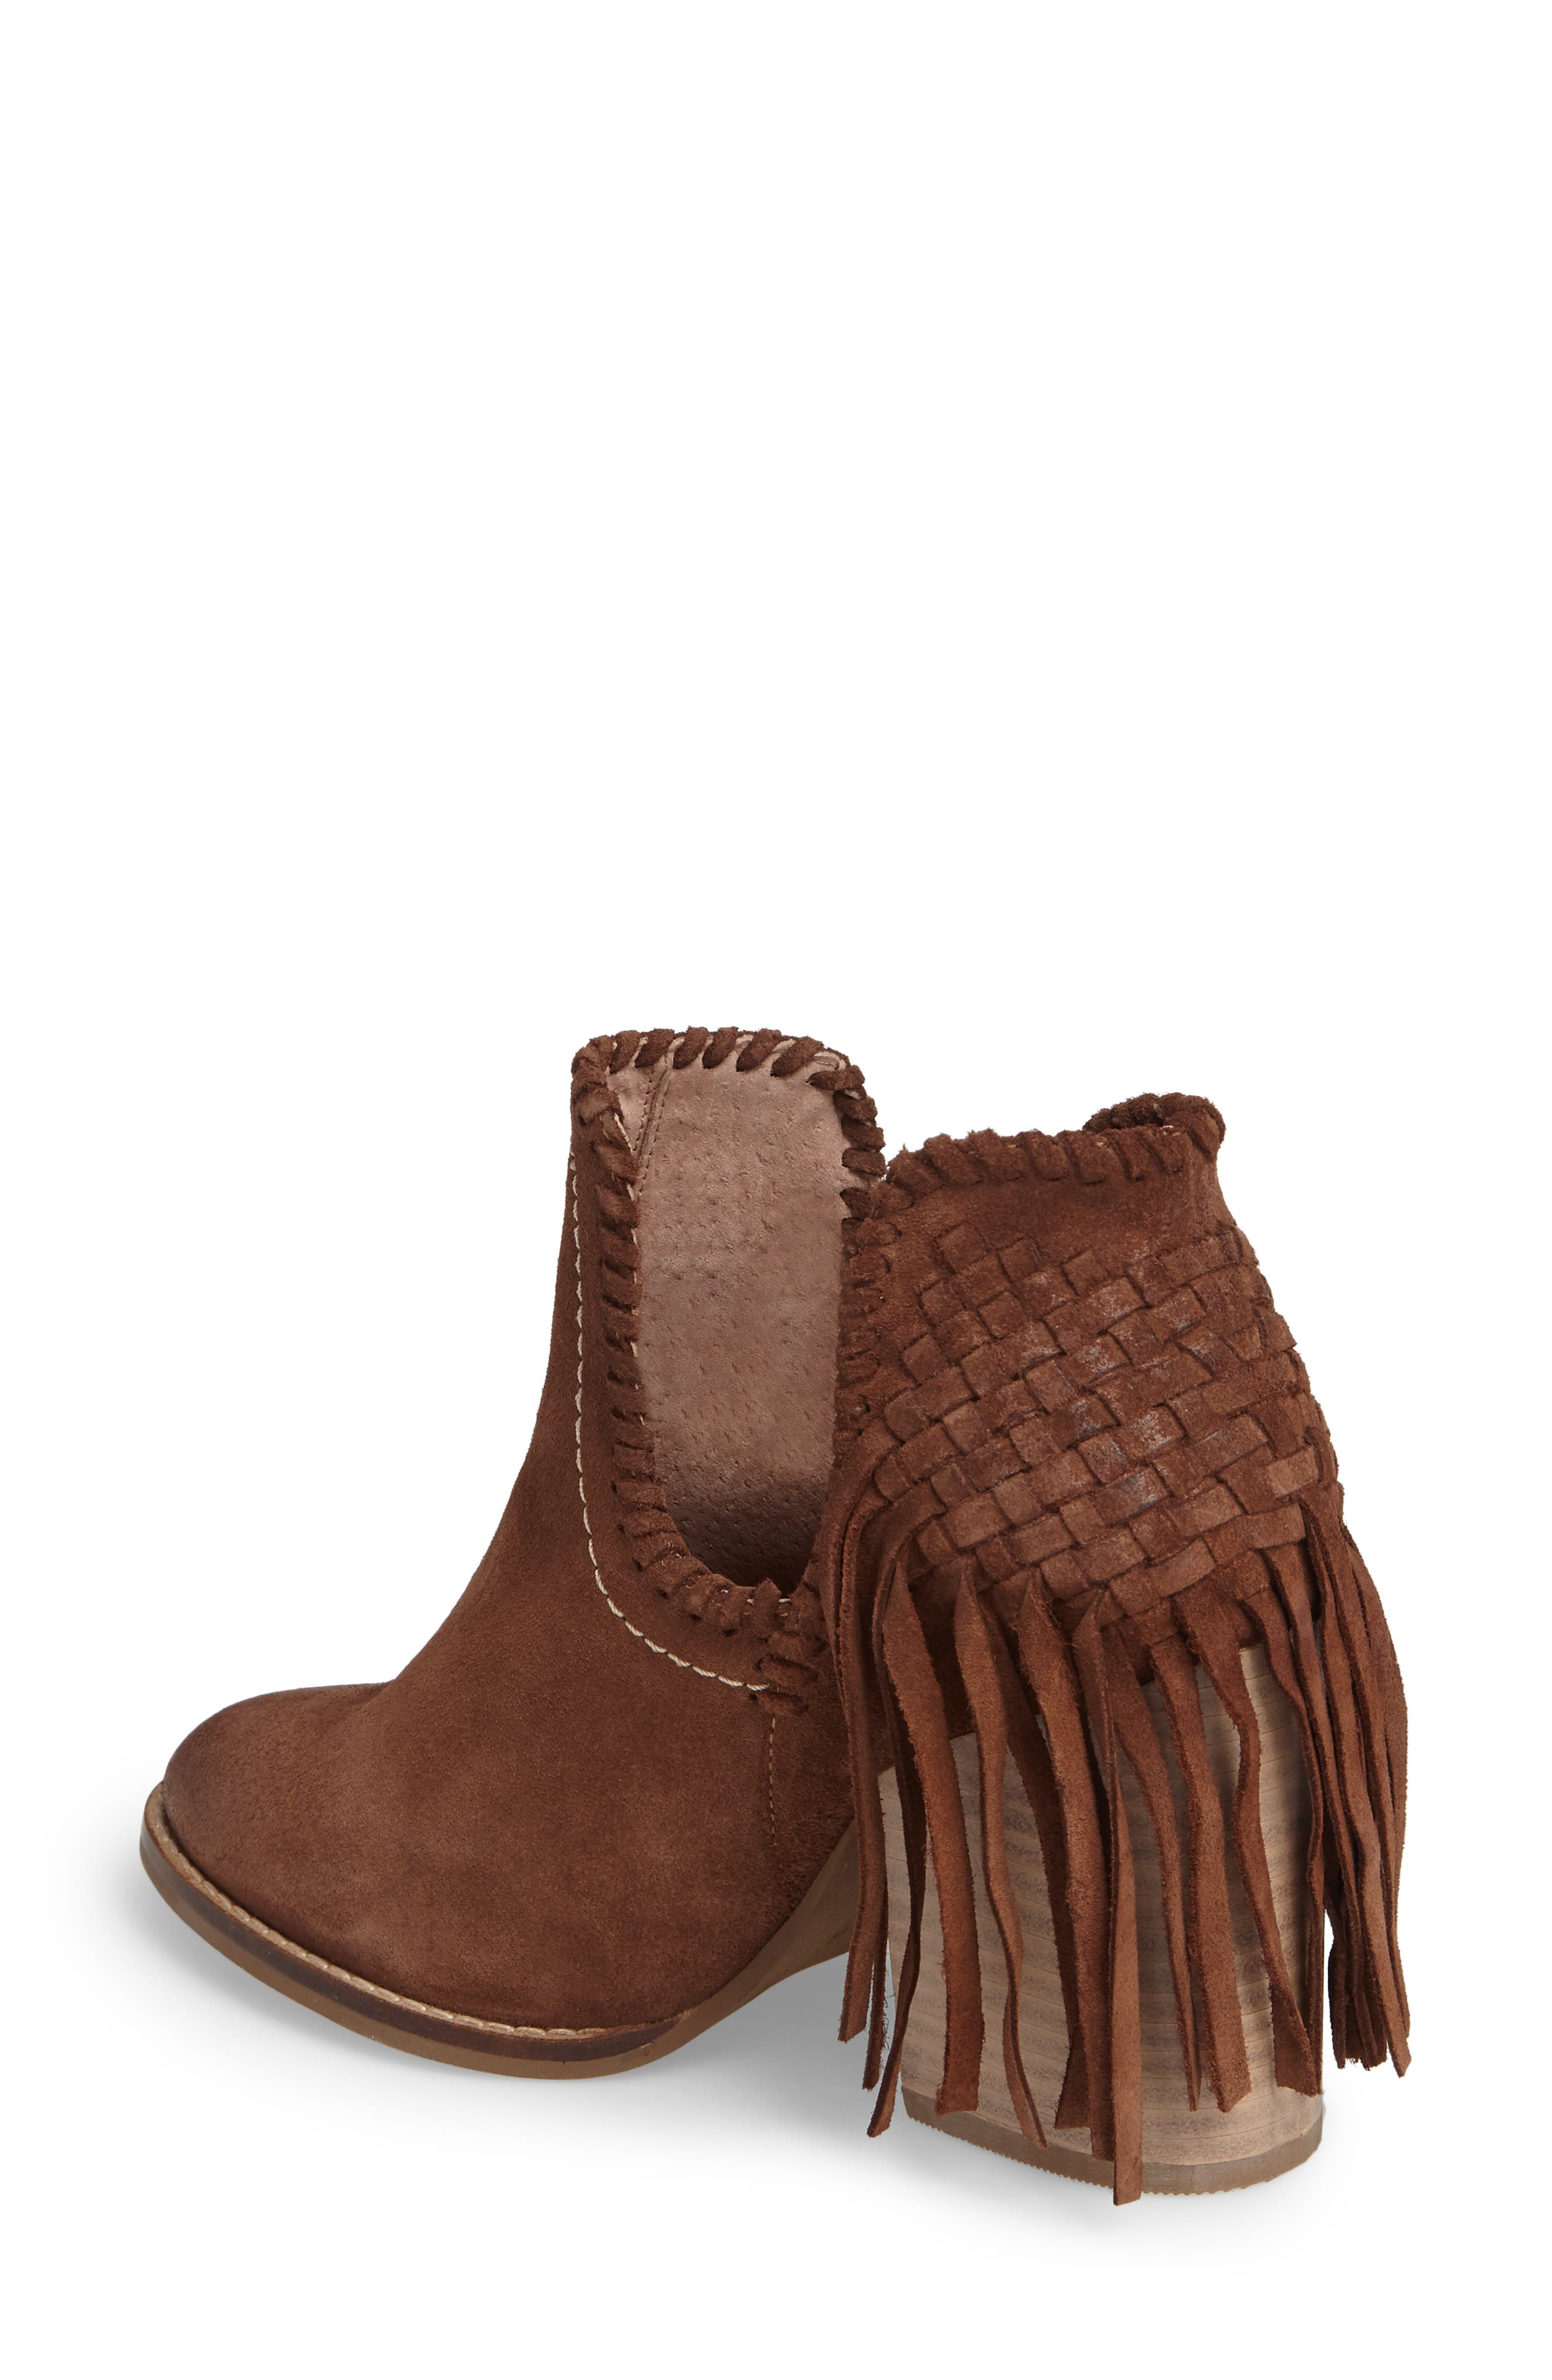 Unbridled Lily Bootie,                             Alternate thumbnail 2, color,                             Whiskey Suede